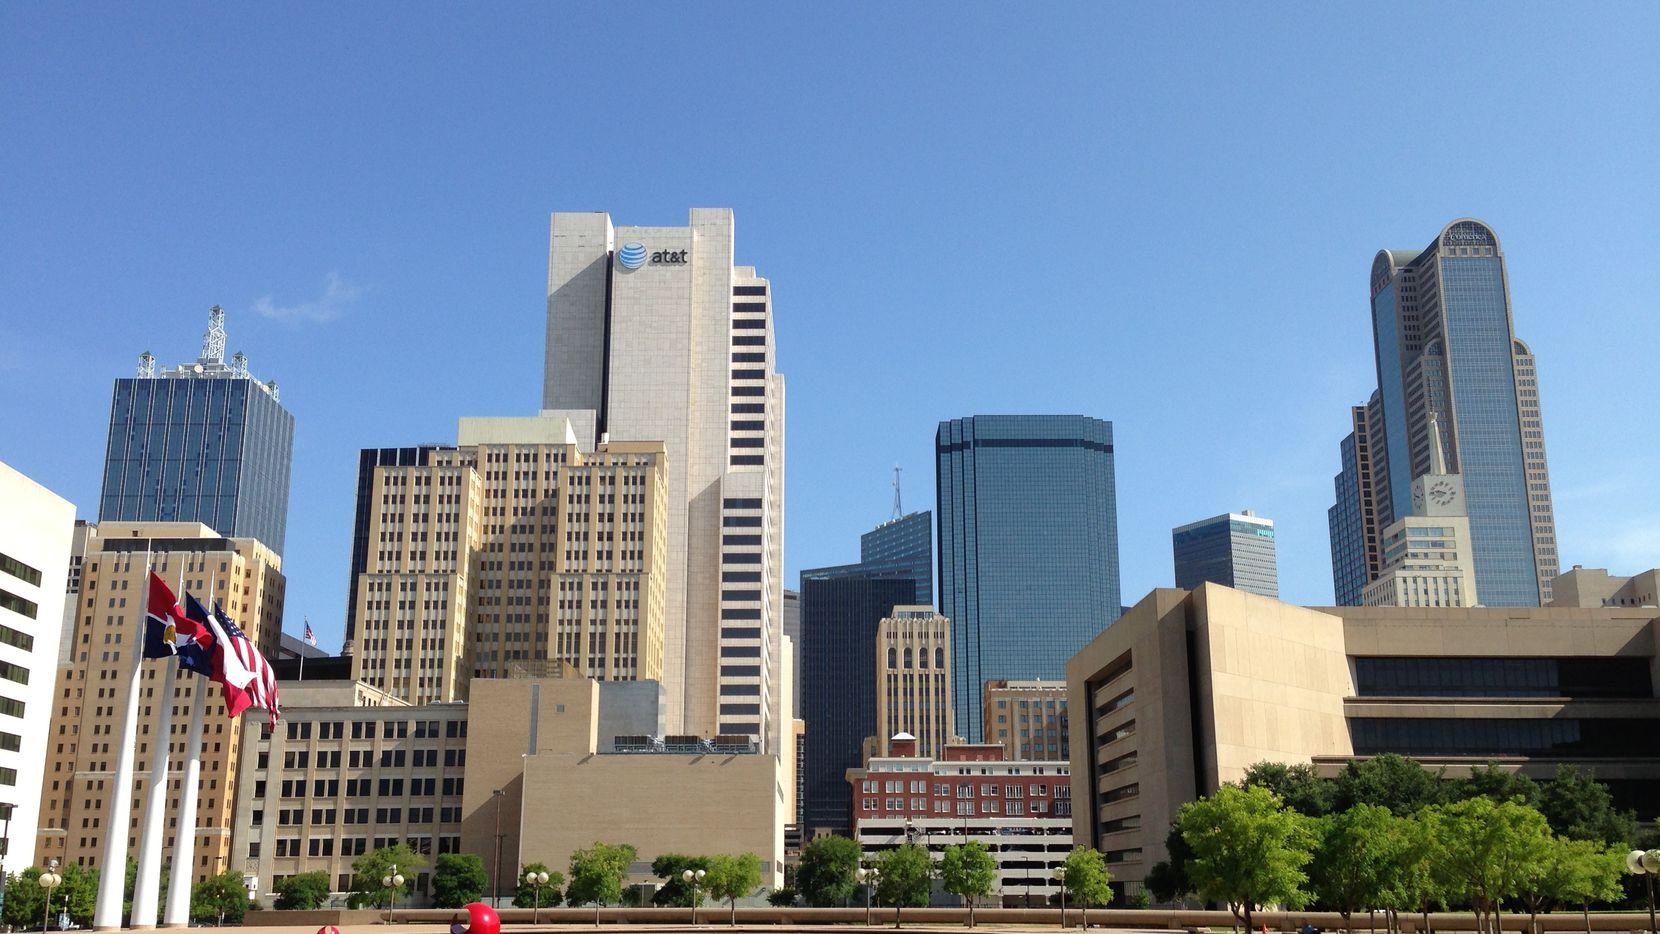 Colliers International is a top commercial real estate service provider in North Texas.